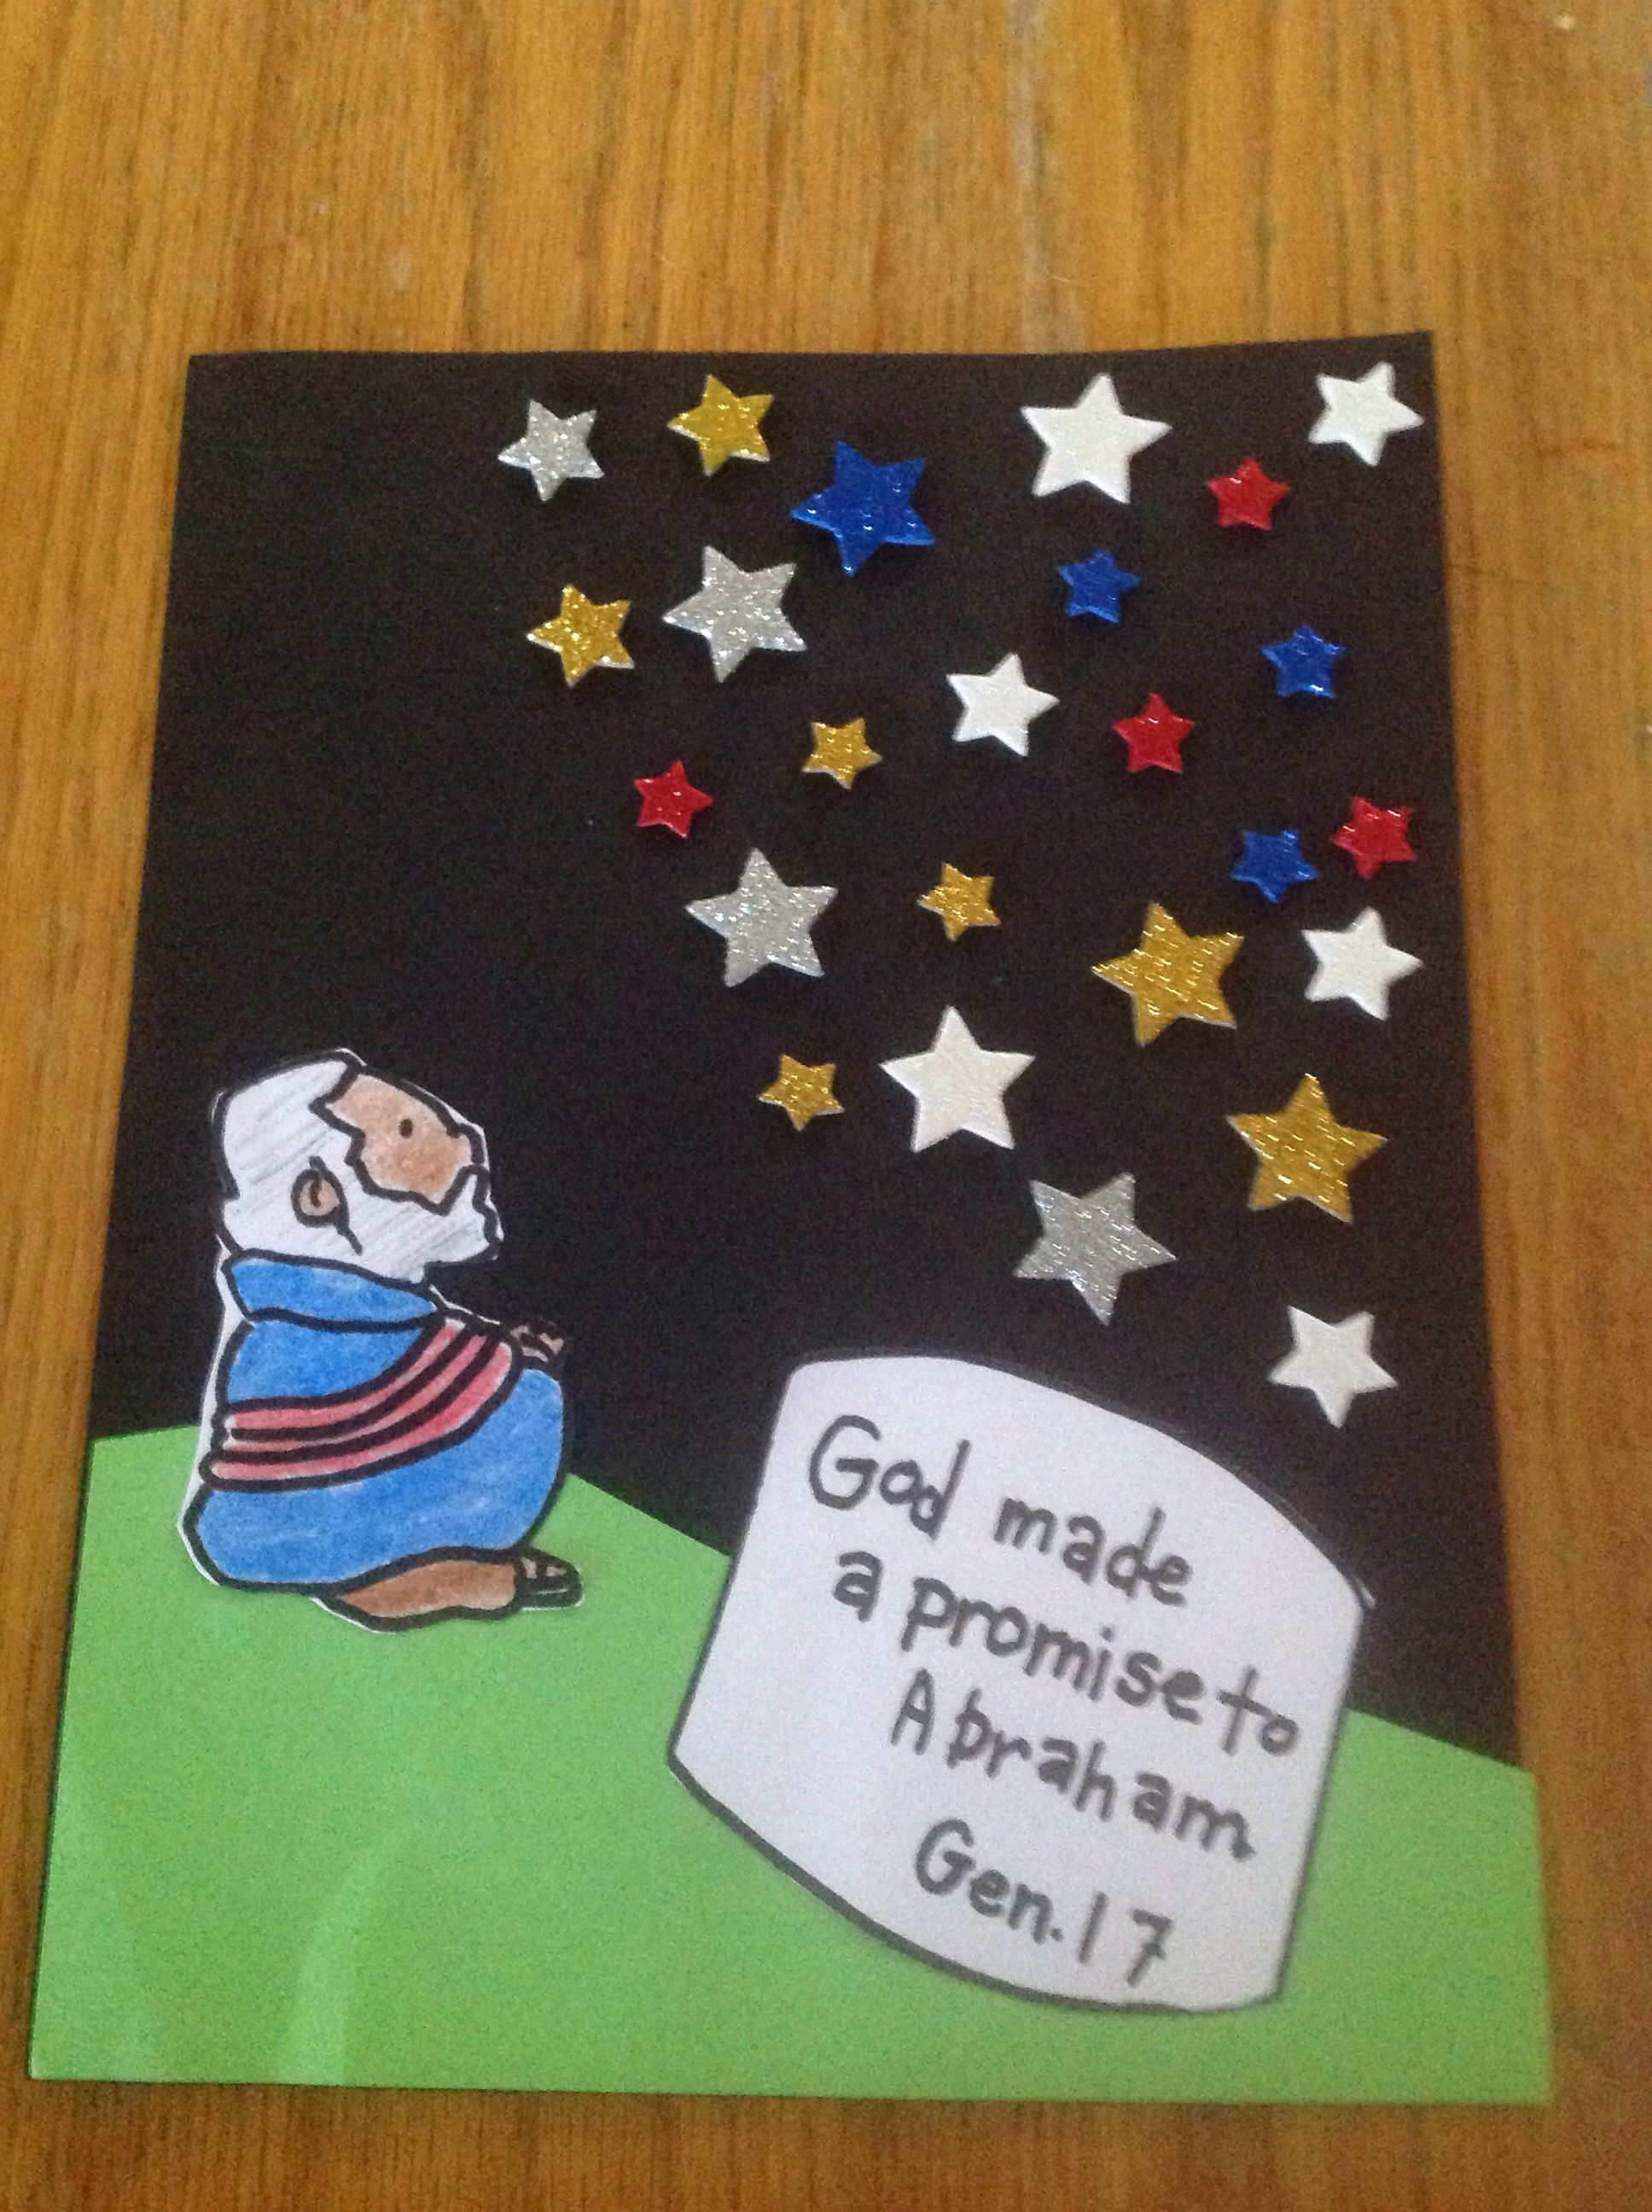 10 Nice Sunday School Ideas For Toddlers god made a promise to abraham craftlet abraham 2020